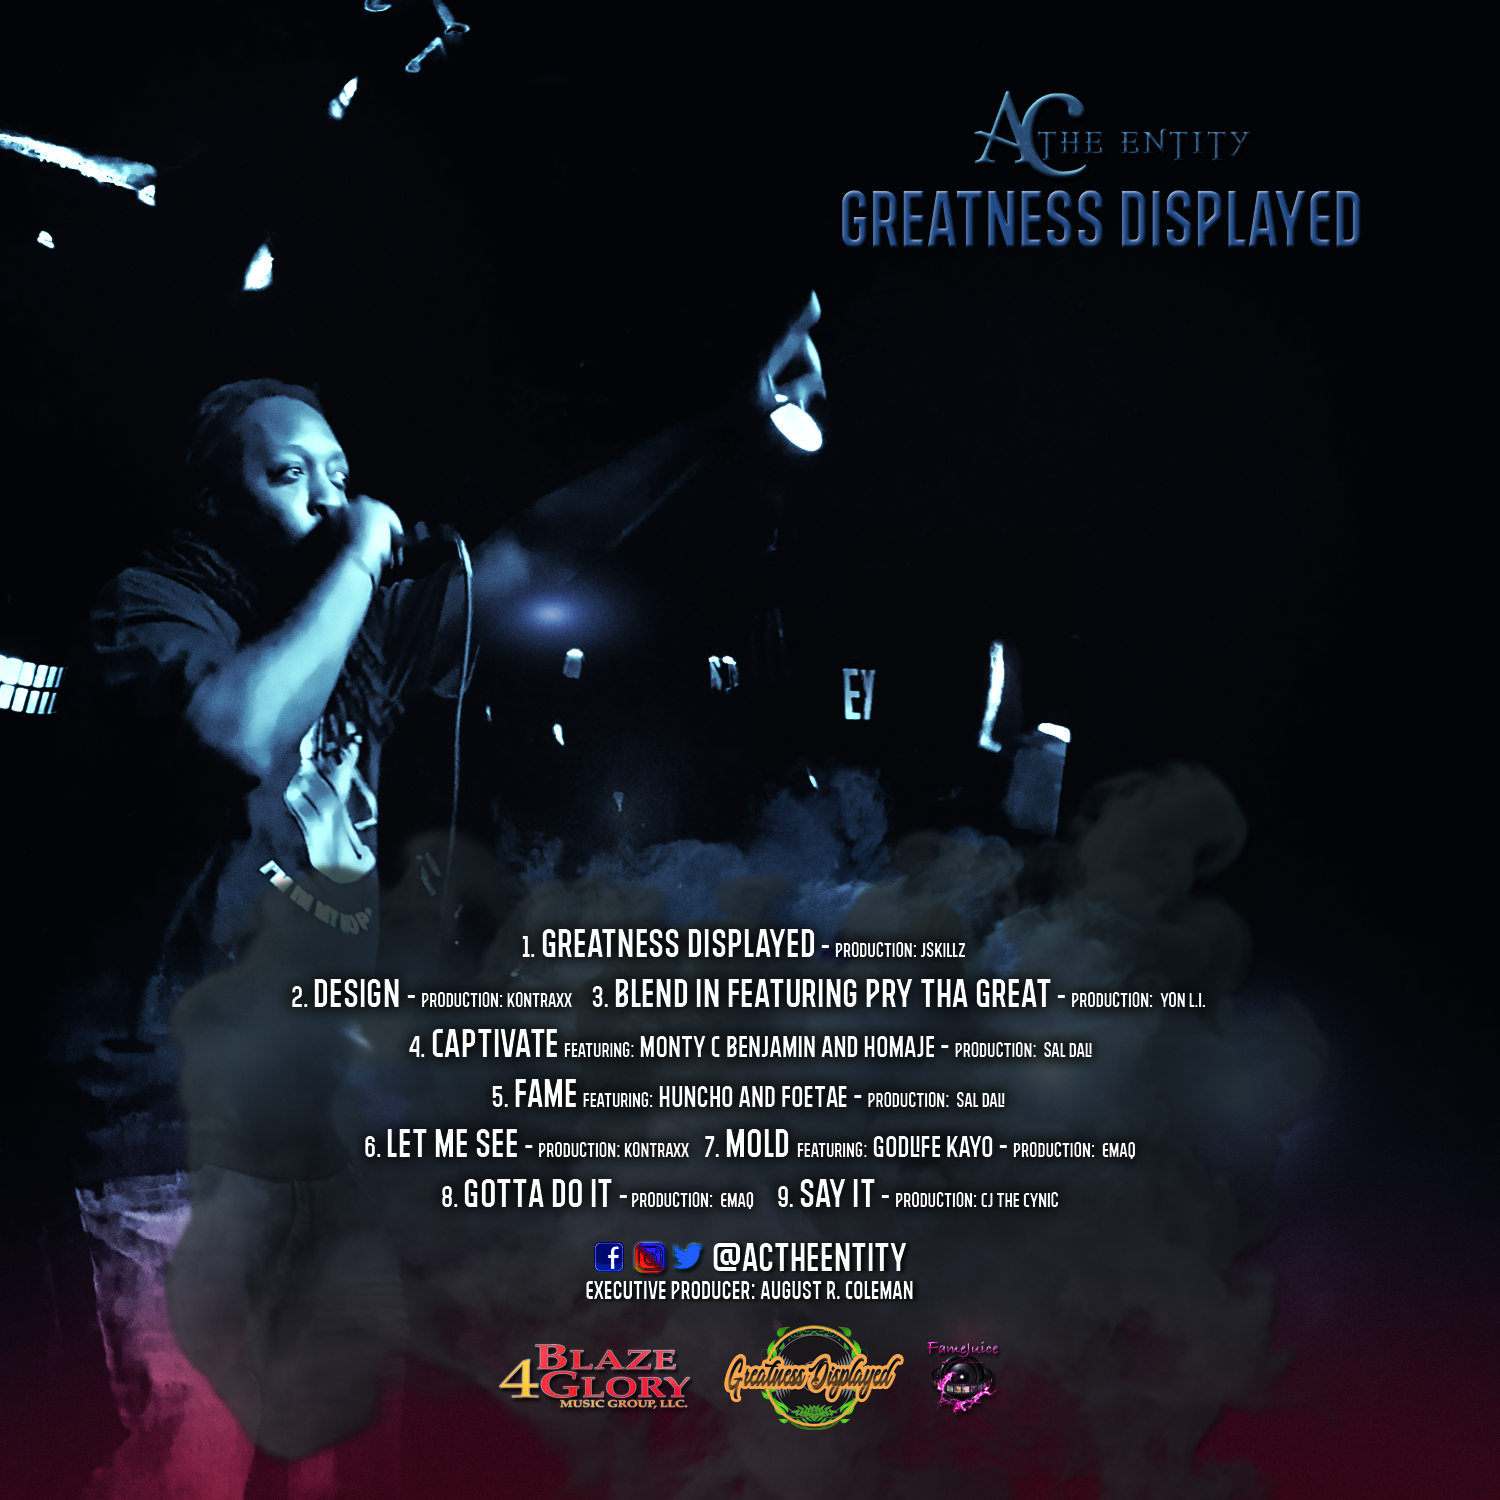 AC The Entity - Greatness Displayed (Explicit)